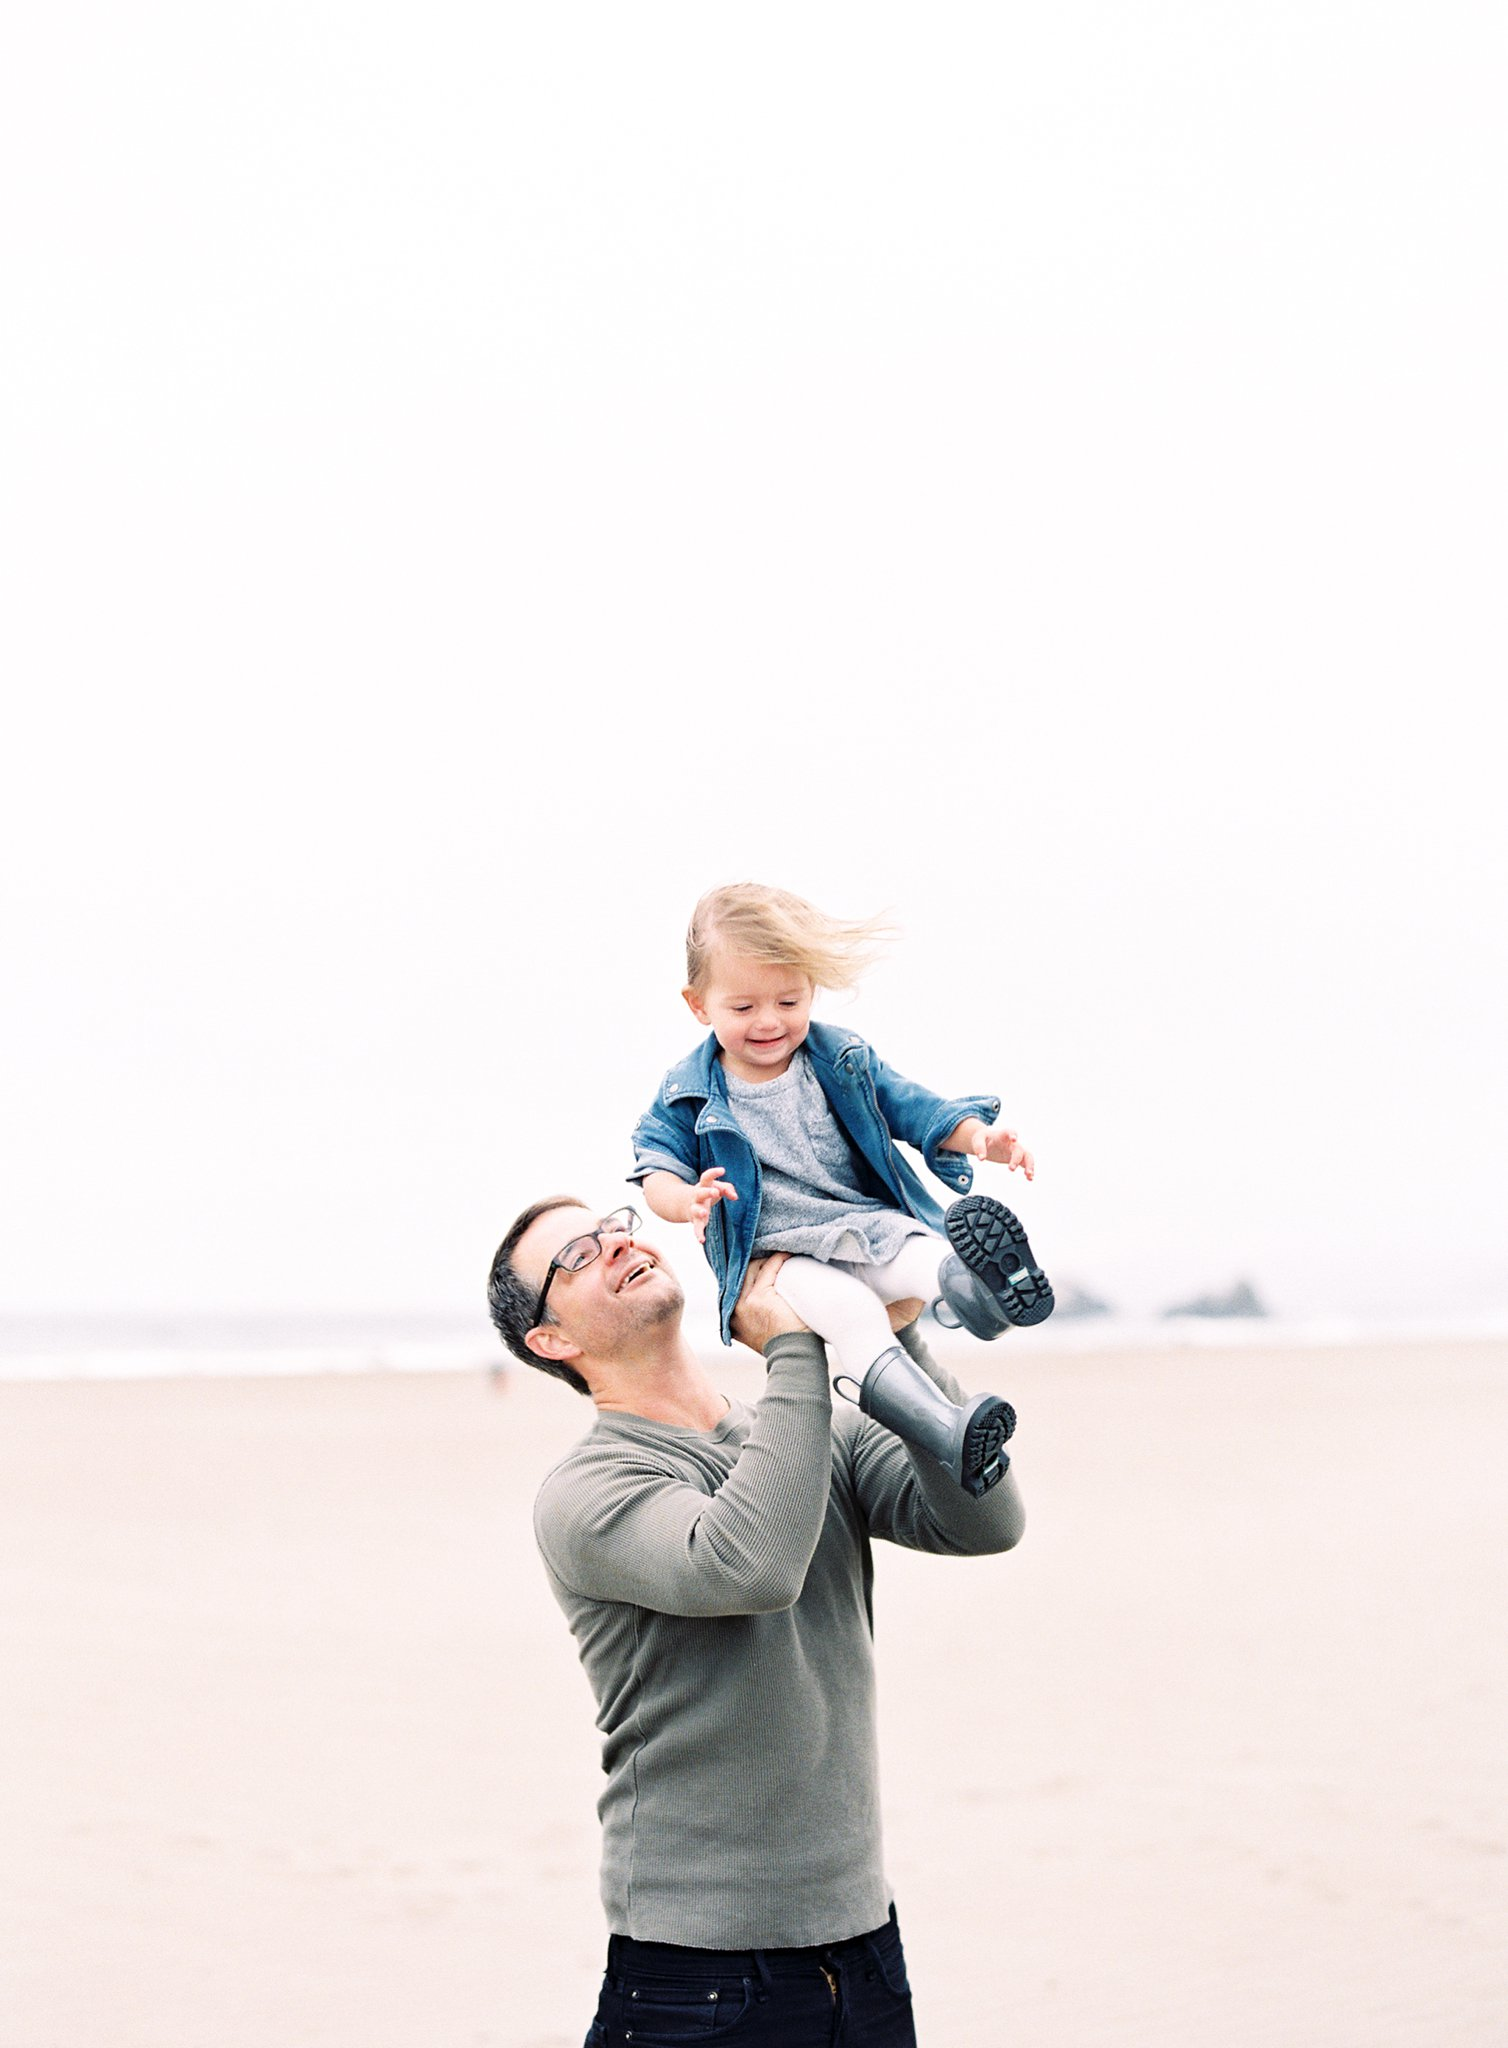 san francisco family session san francisco family photographer shannon griffin photography_0075.jpg